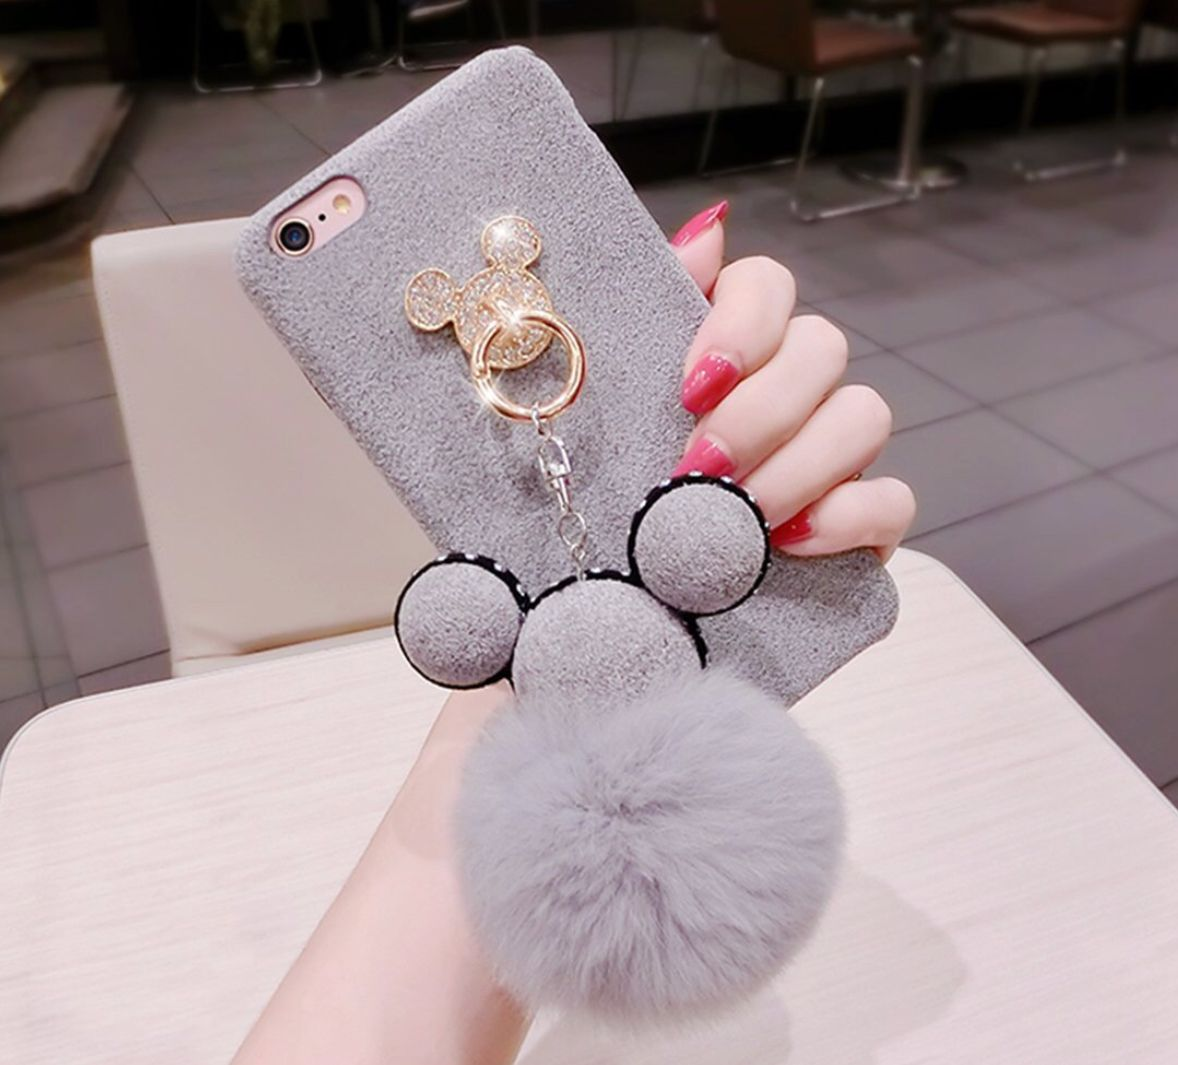 5b91e730d33 Tianyuanxuan Iphone 7/ 8 Plus Bling Silicone Case for Girls Ring Phone  Cover Non-slip Soft Shell for Iphone7/ 8 Plus Protector-Gray